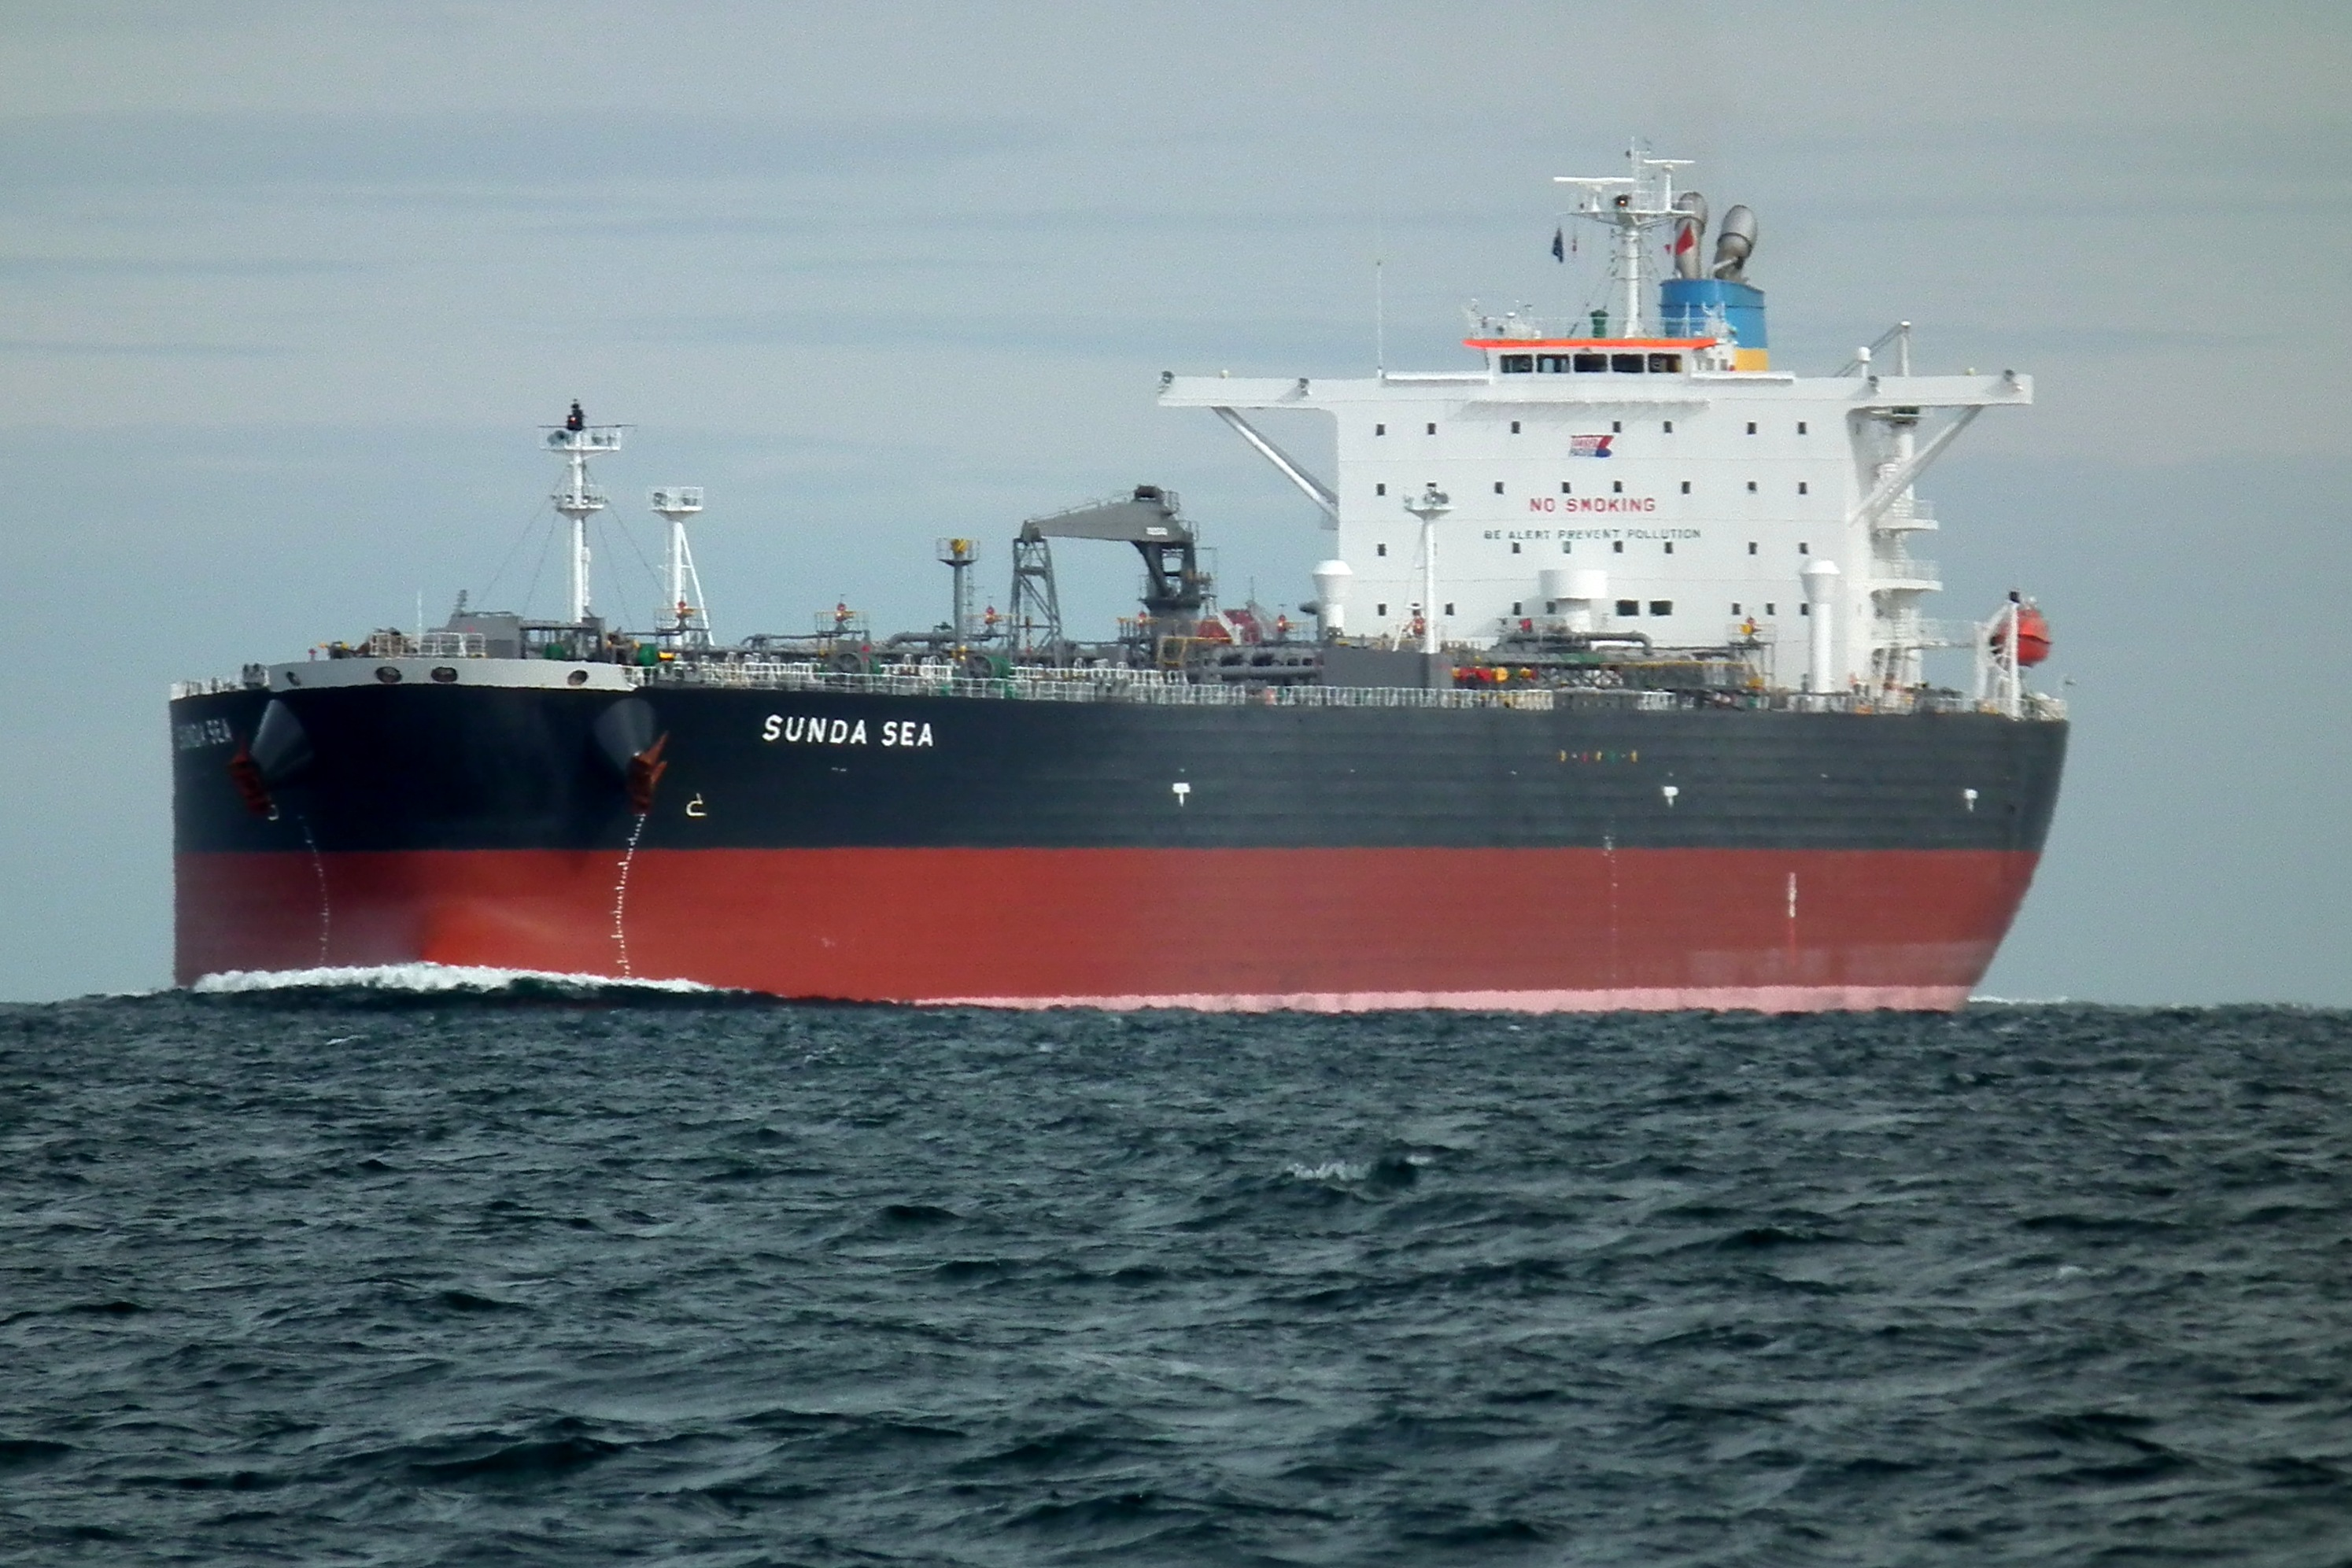 sunda_sea-9457608-crude_oil_tanker-ship-1141